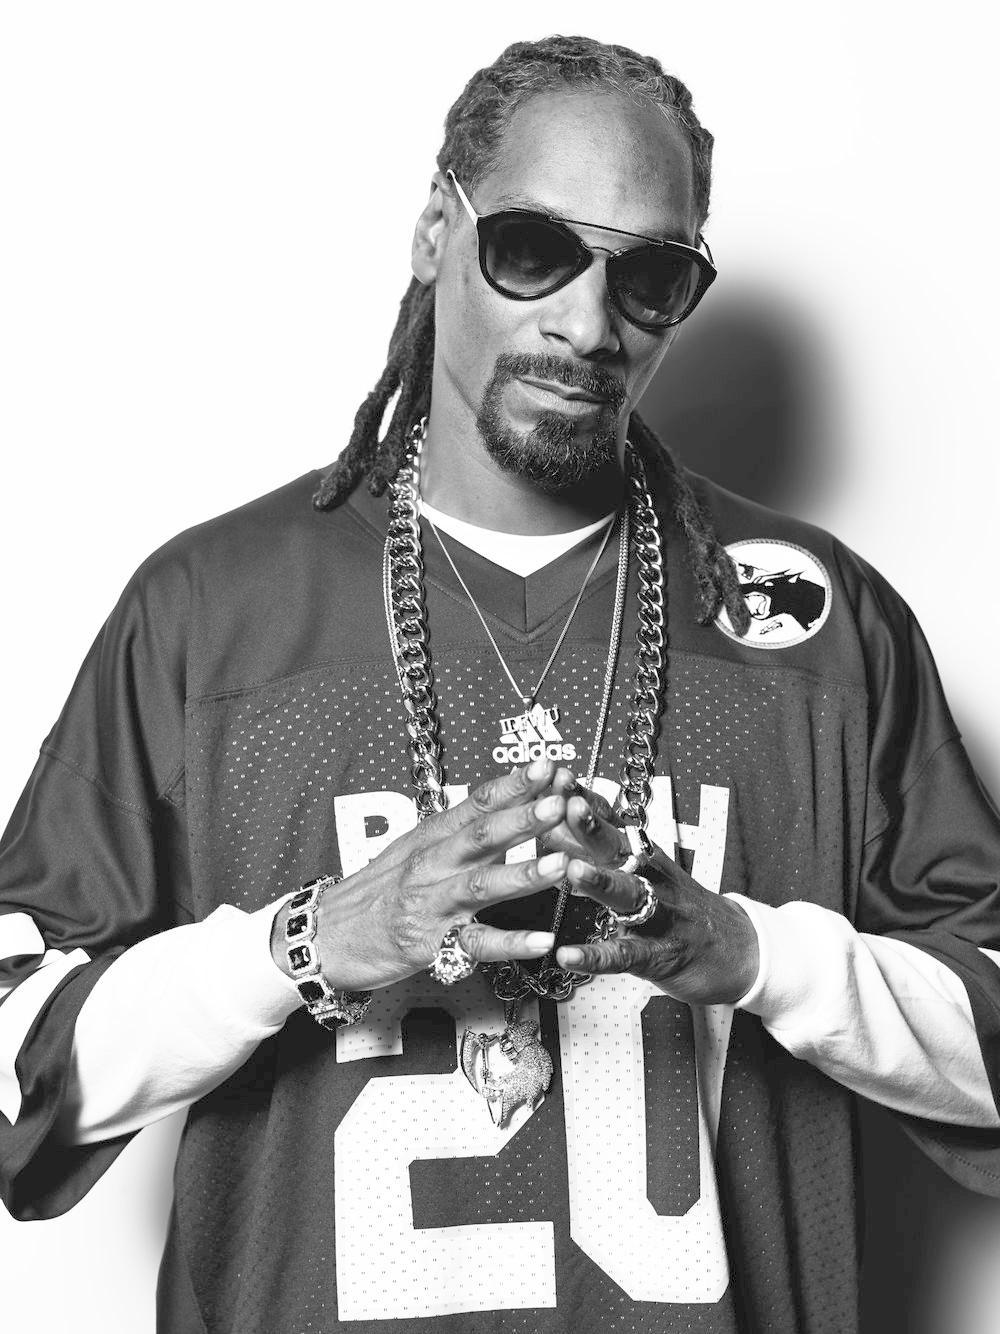 Snoop Dogg - Best mp3 - Best music for Android - APK Download